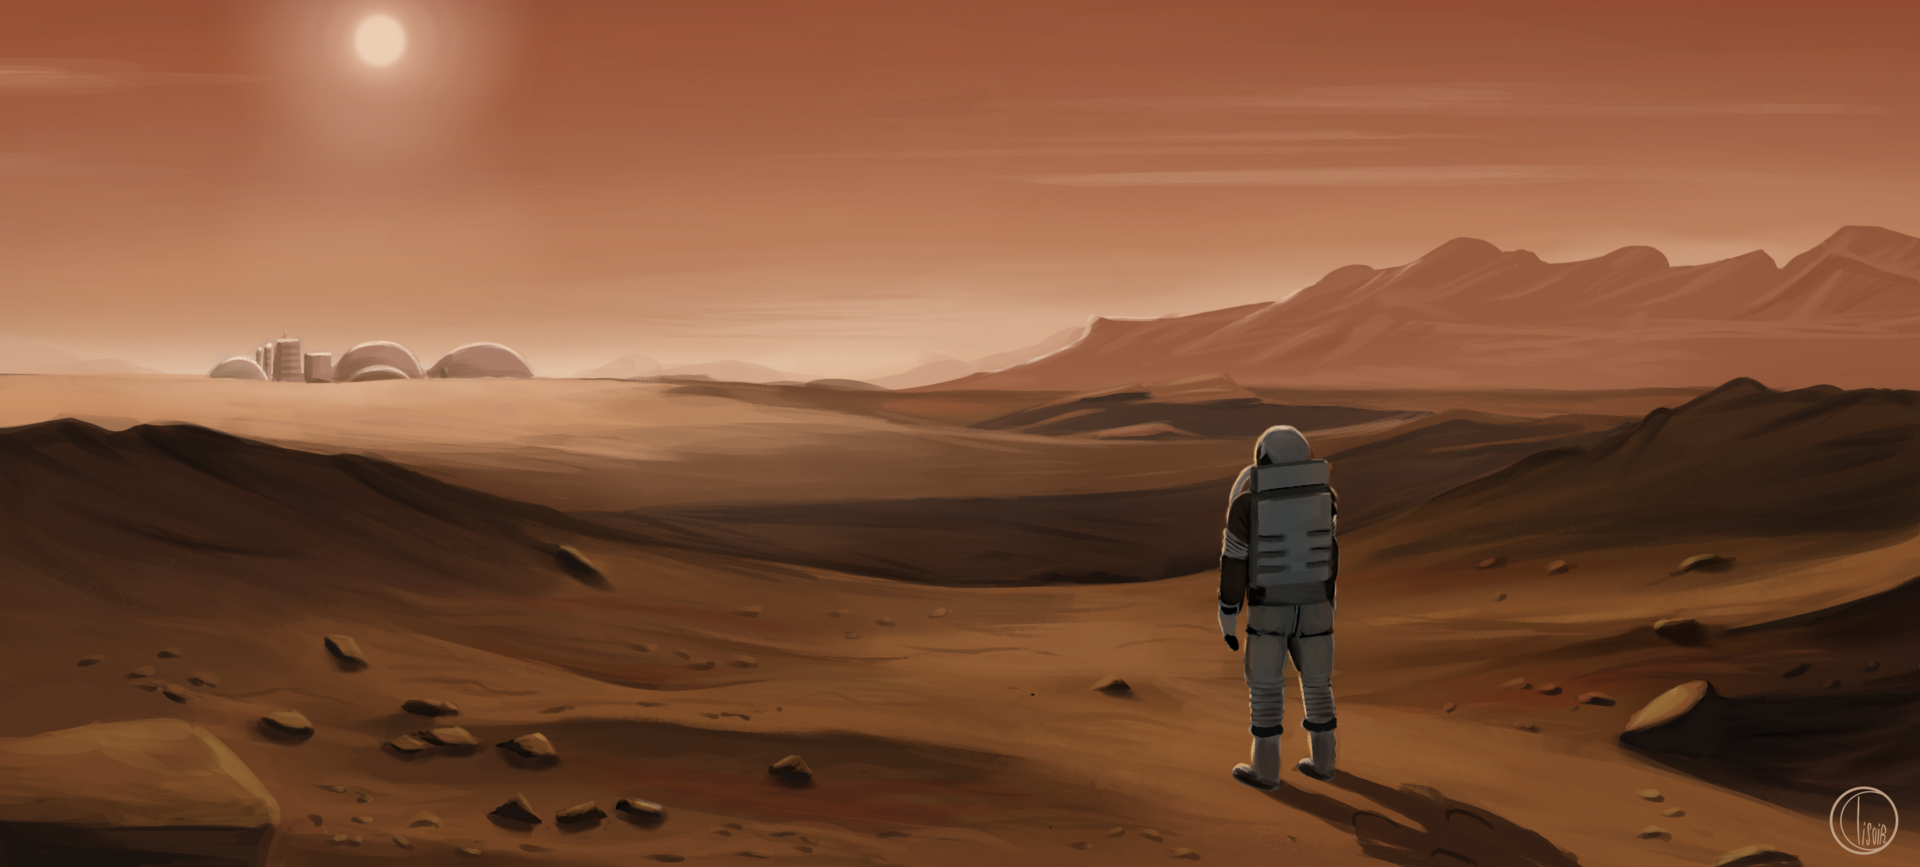 life on mars? par Gamimatia